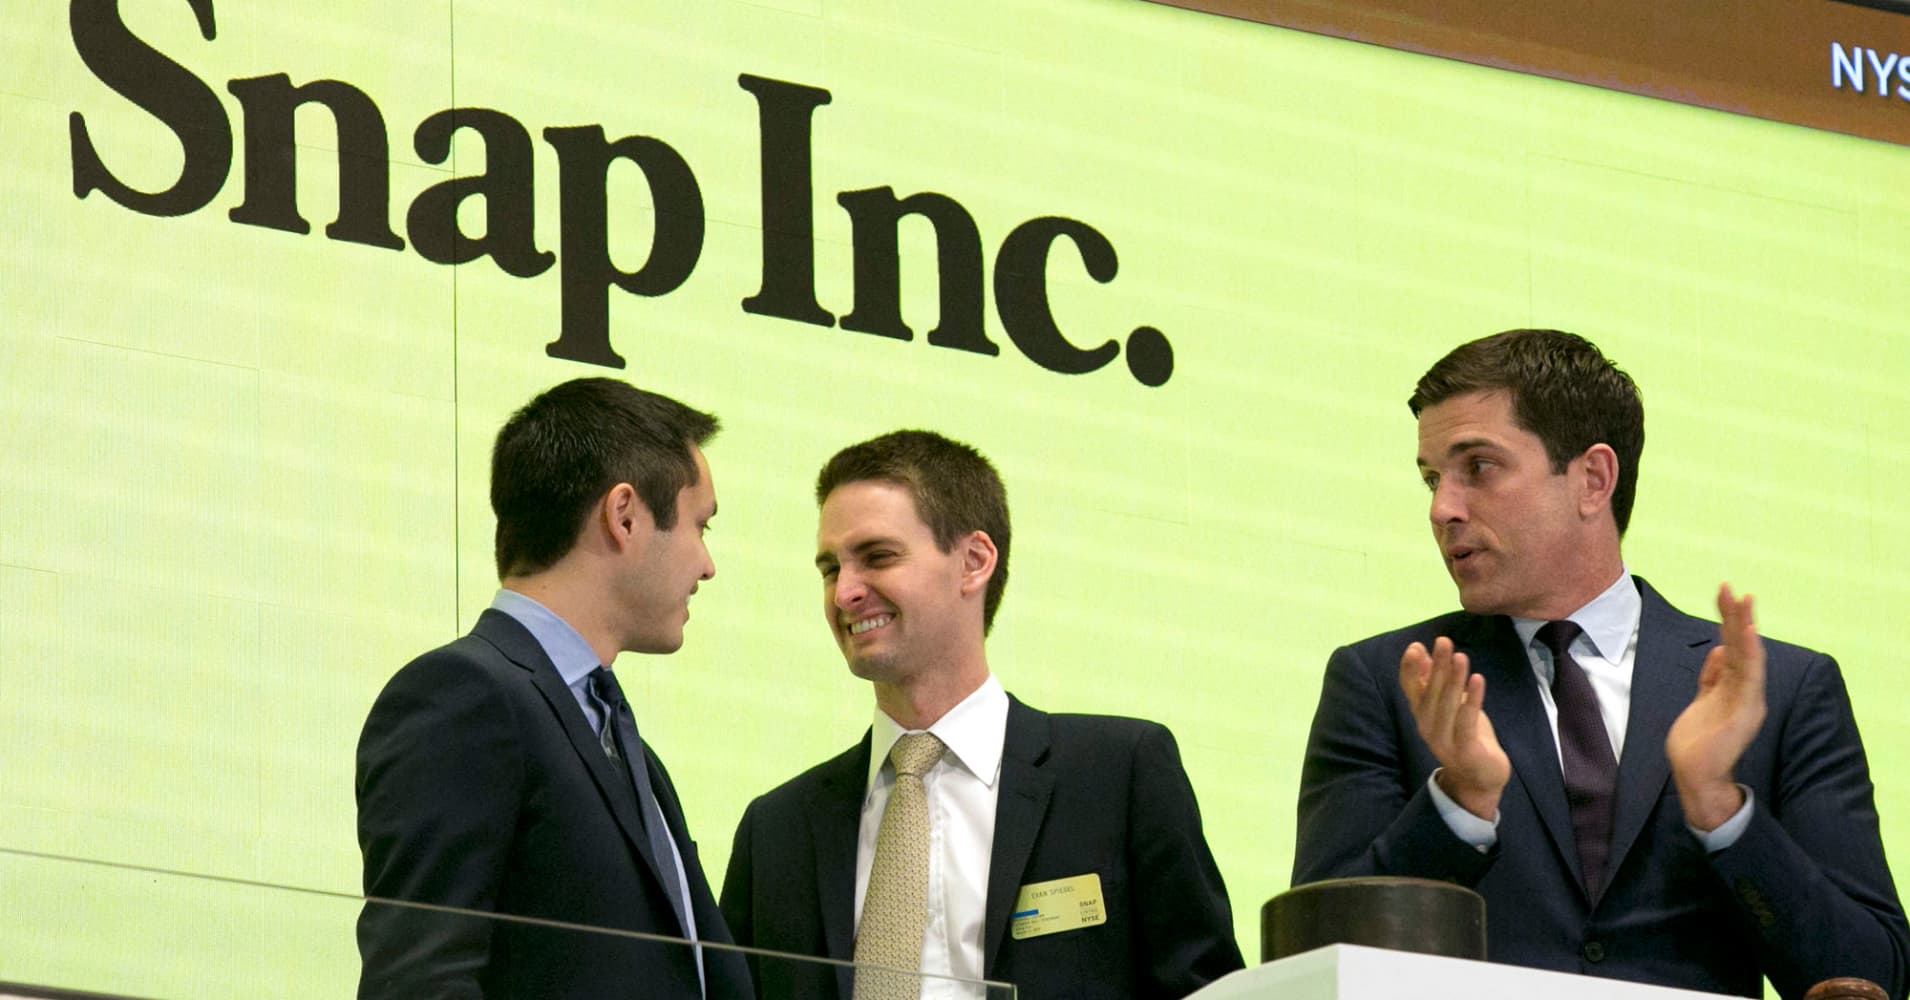 Snap just went public heres how an ipo actually works snapchat co founders bobby murphy left and ceo evan spiegel center buycottarizona Image collections